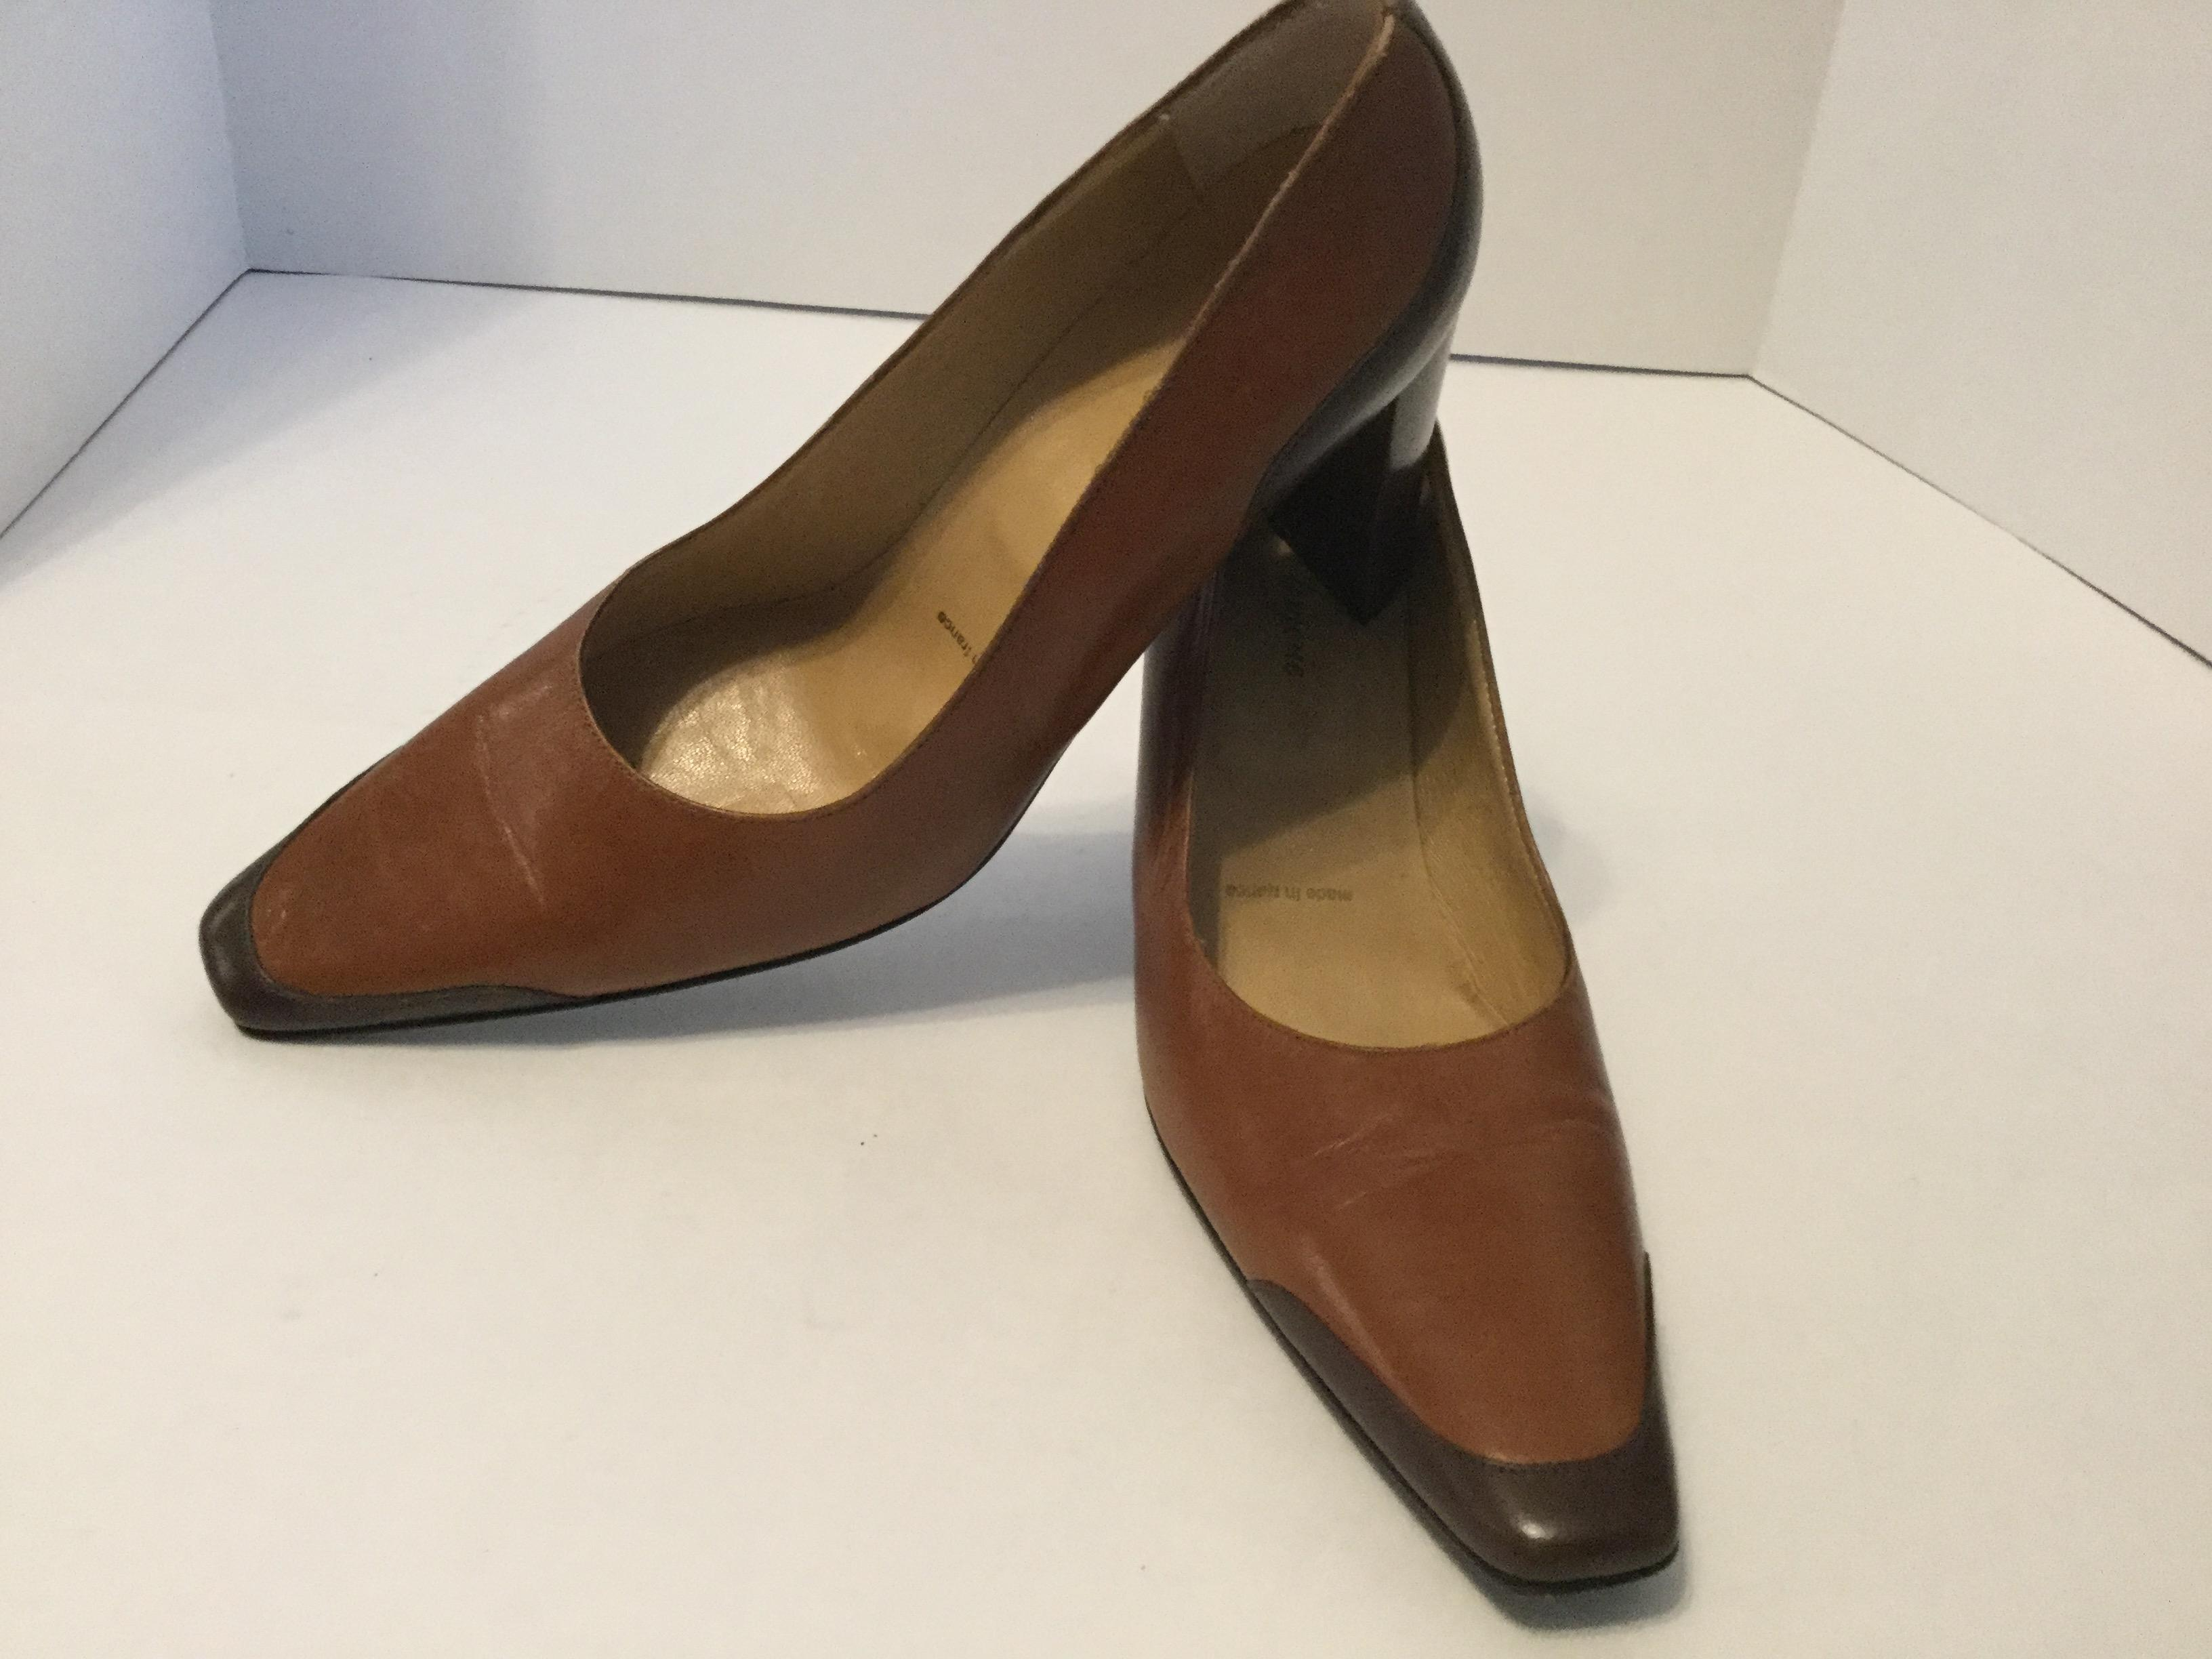 Robert Clergerie Leather Square-Toe Pumps cheap sale high quality for sale cheap price get authentic for sale fake cheap price NtZhtTtU